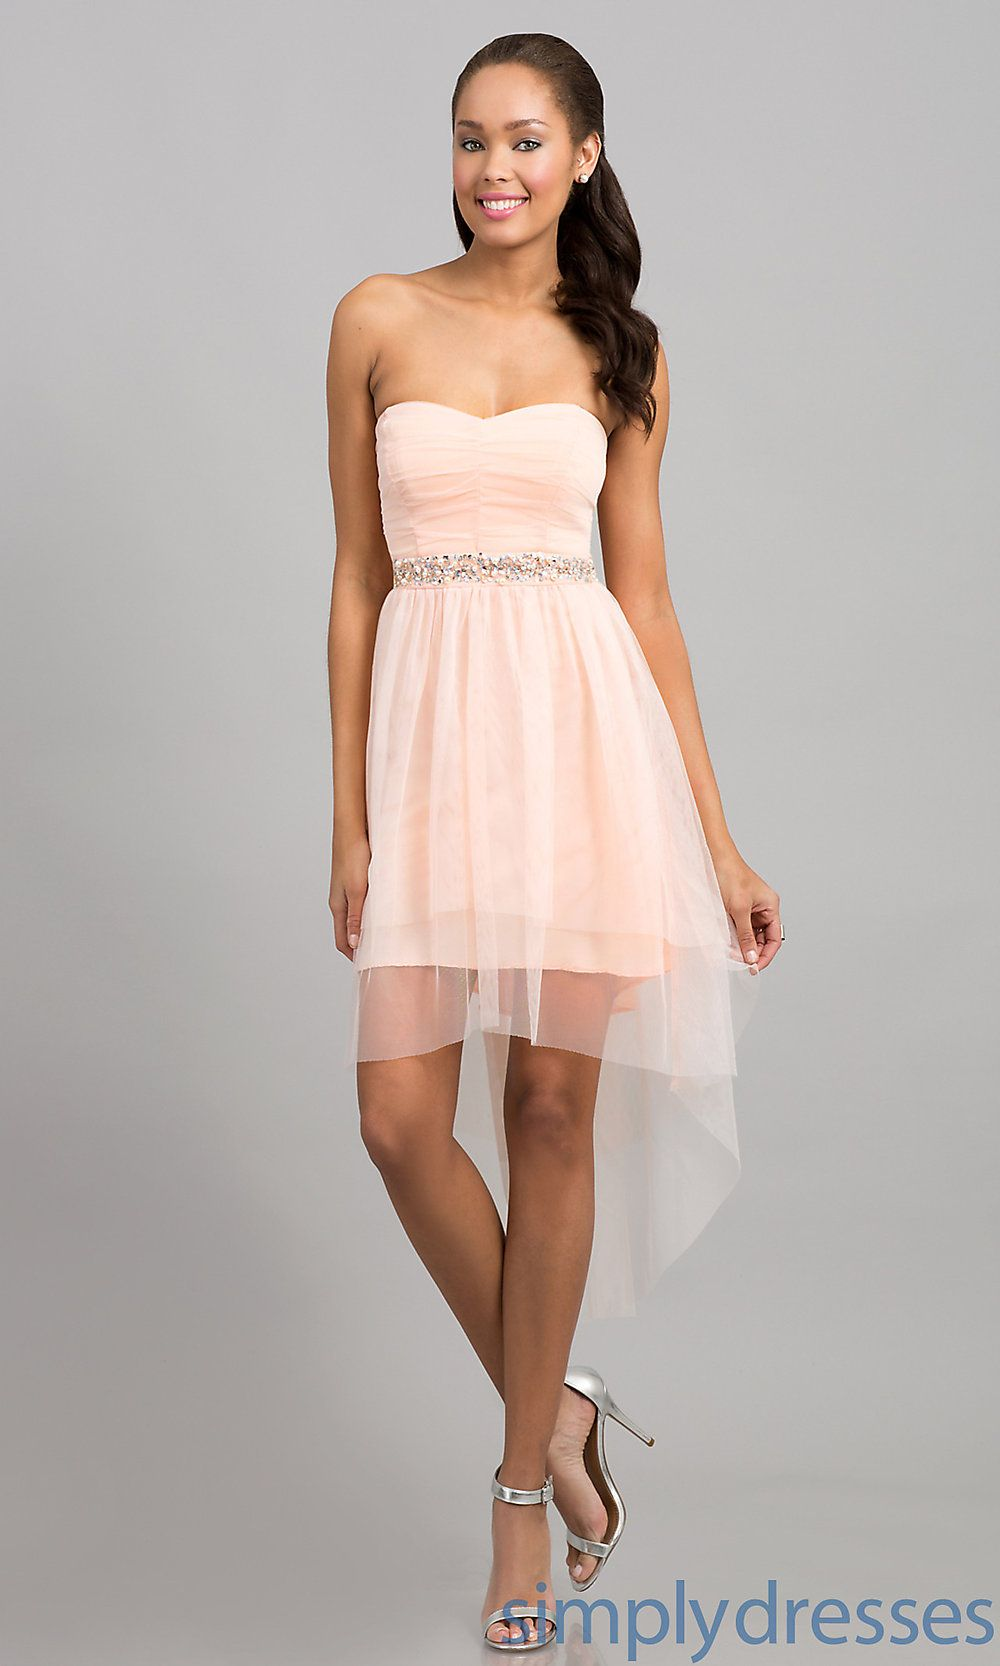 Strapless Ruby Rox Mullet Party Dress Simply Dresses Mullets